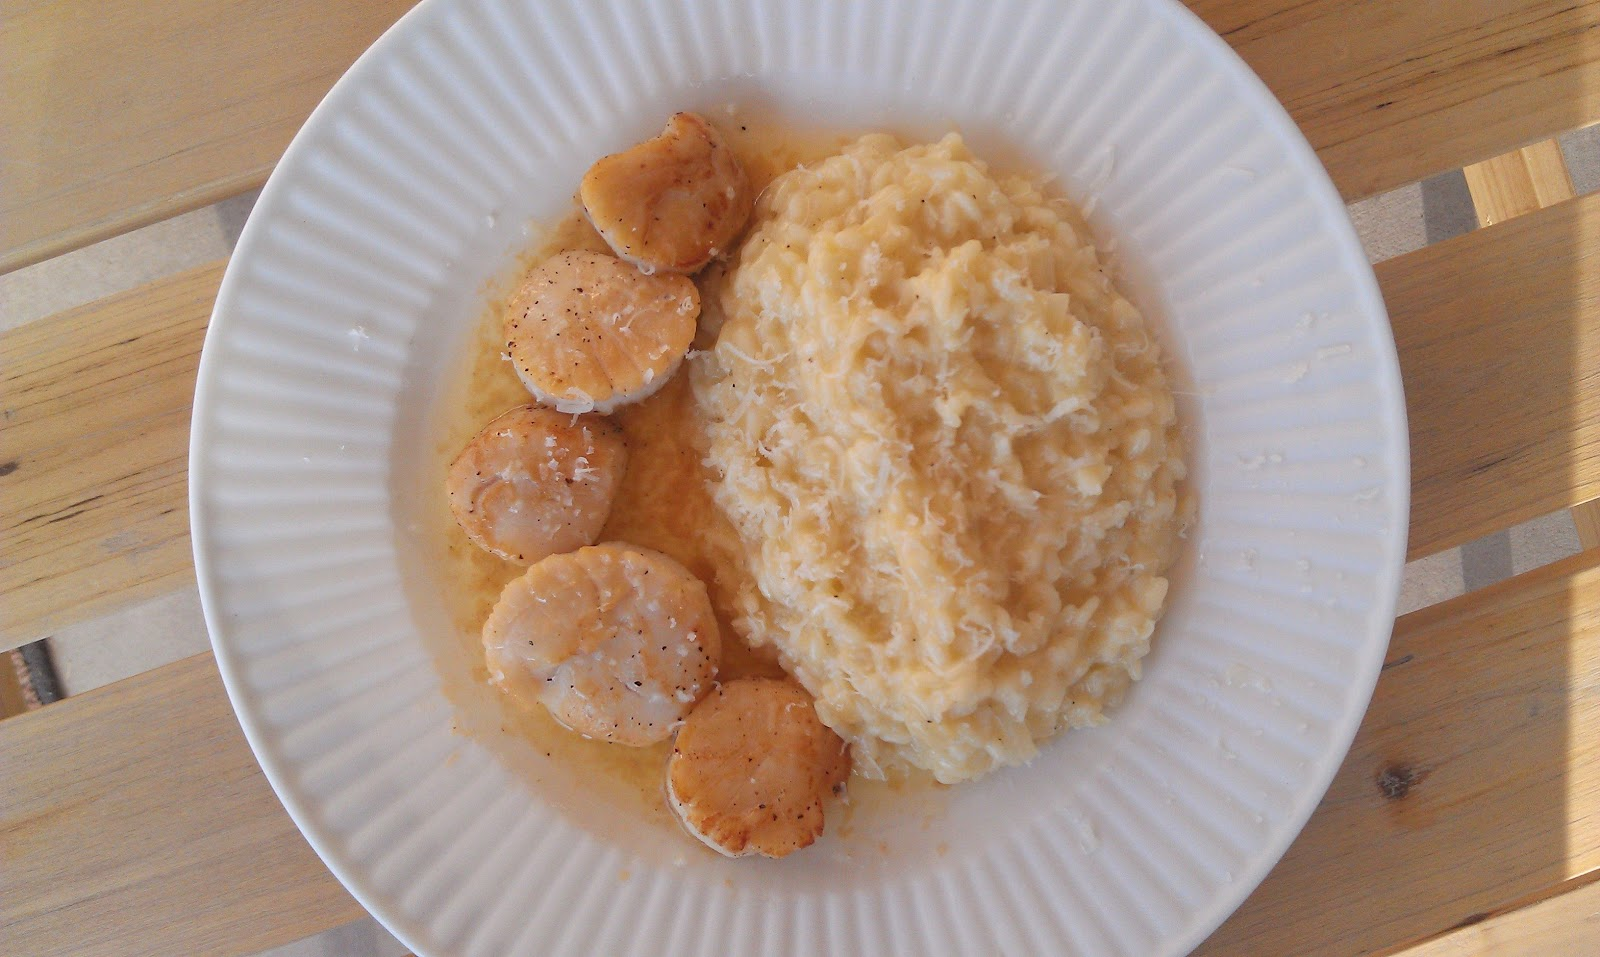 Seared Scallops with Ginger-Lime Beurre Blanc and Milanese Risotto